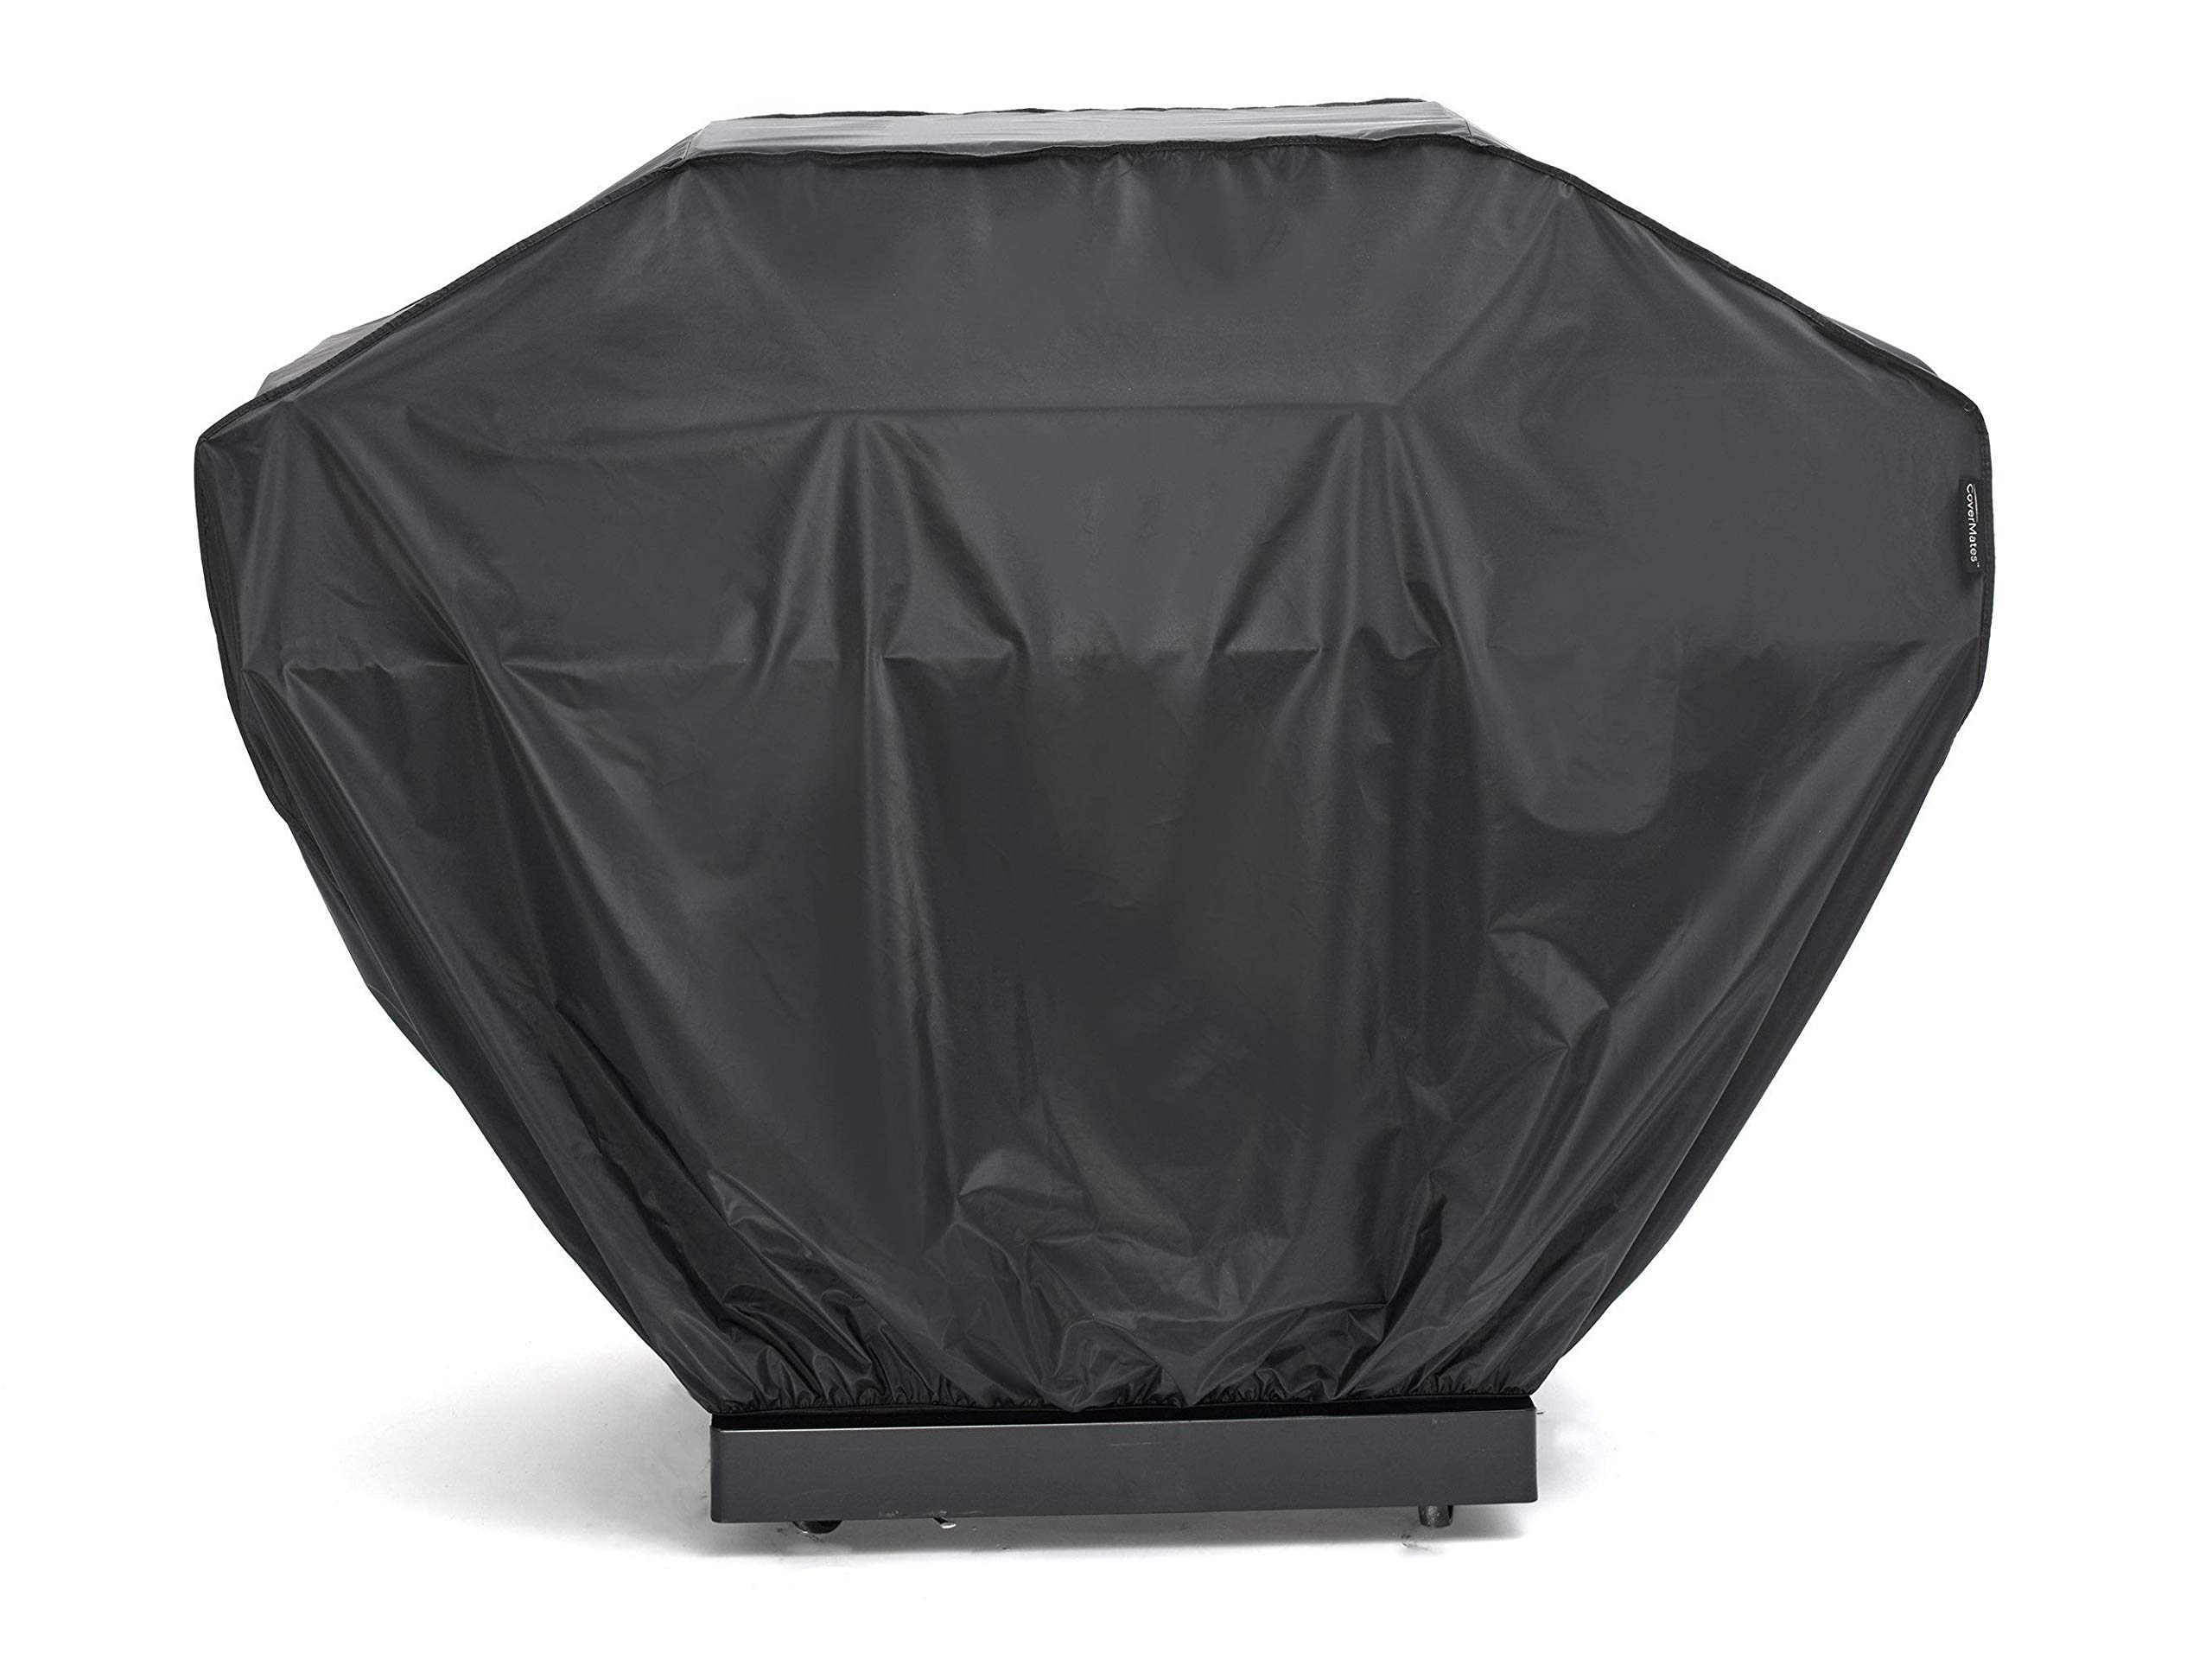 Covermates – Grill Cover – 92W x 30D x 46H – Classic – 12 Gauge Commercial Vinyl – Elastic Hem for Secure Fit – Polyester Lining – 2YR Warranty – Weather Resistant - Black